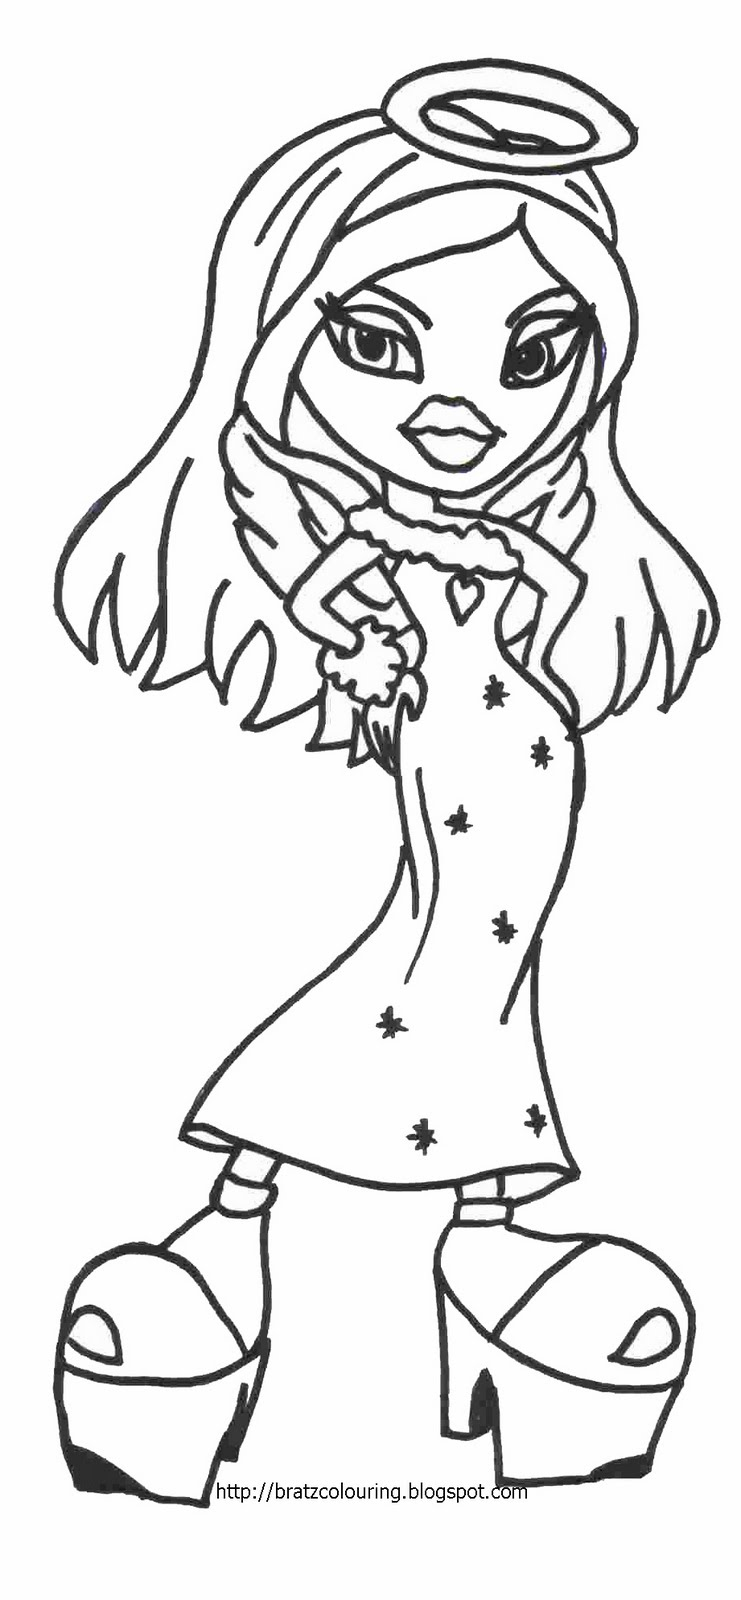 b bratz coloring pages - photo #29